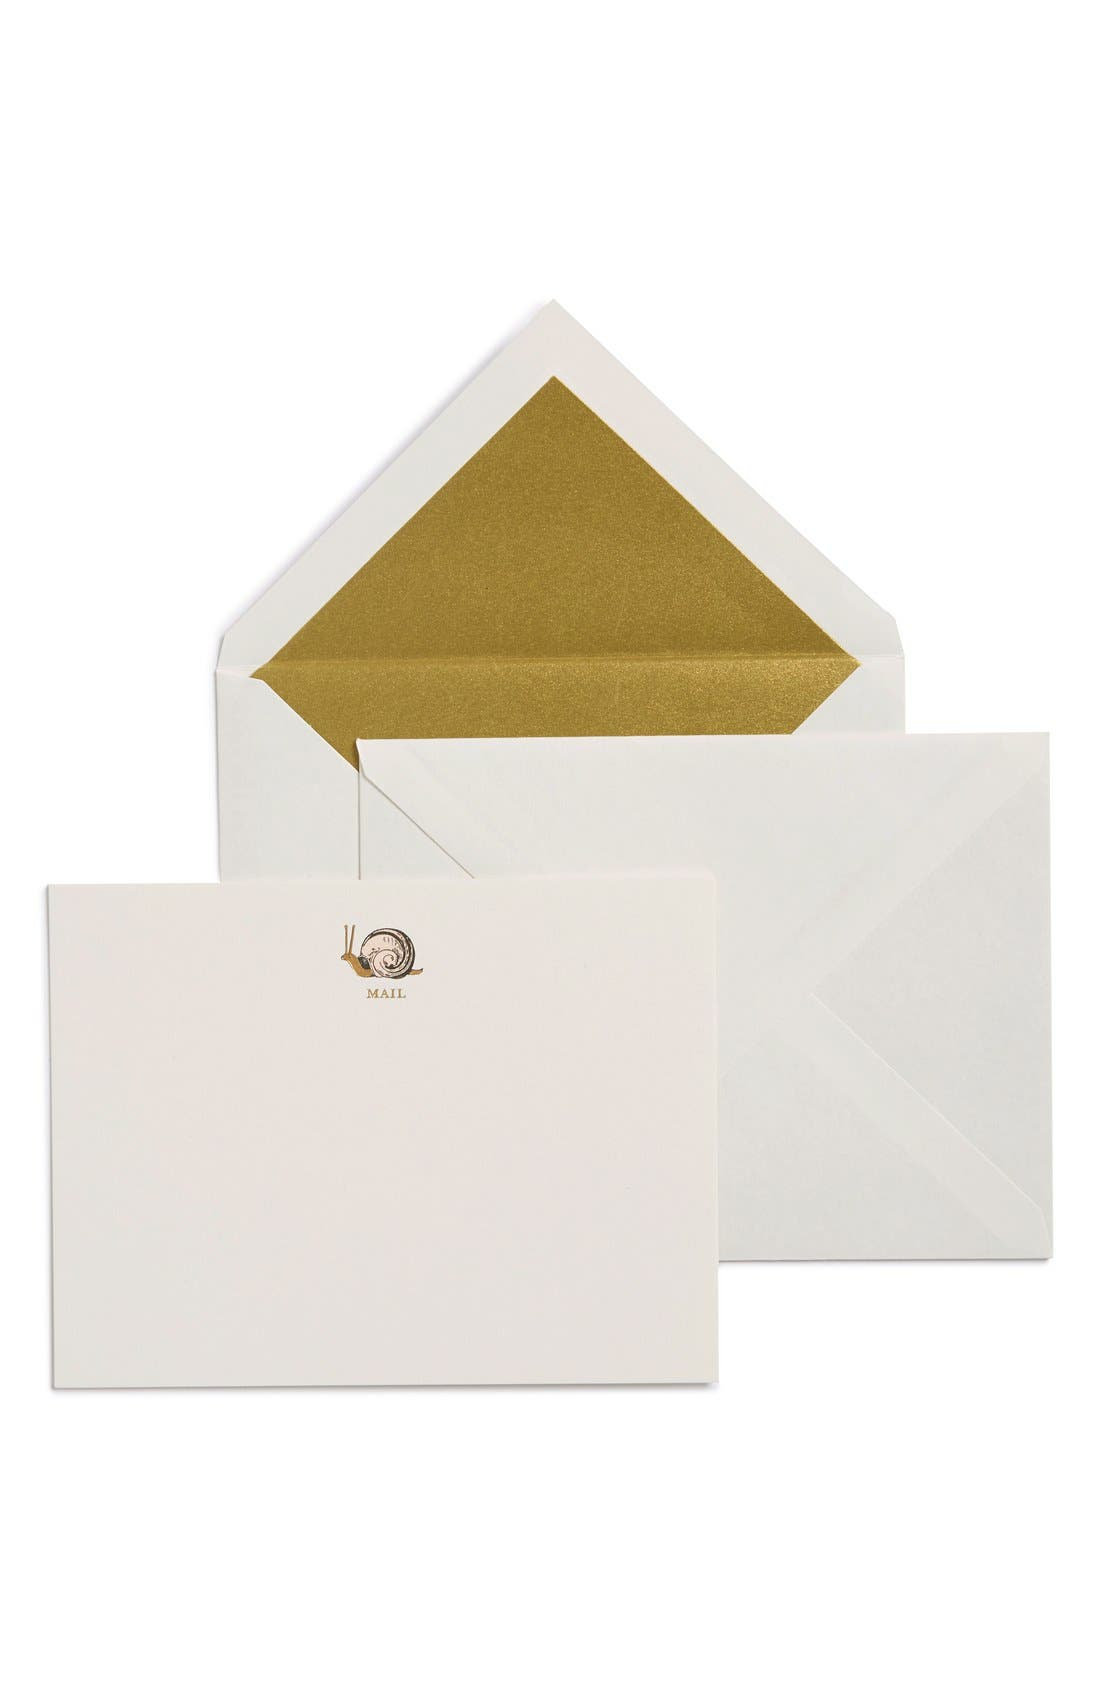 KATE SPADE NEW YORK,                             'snail mail' note cards,                             Main thumbnail 1, color,                             100